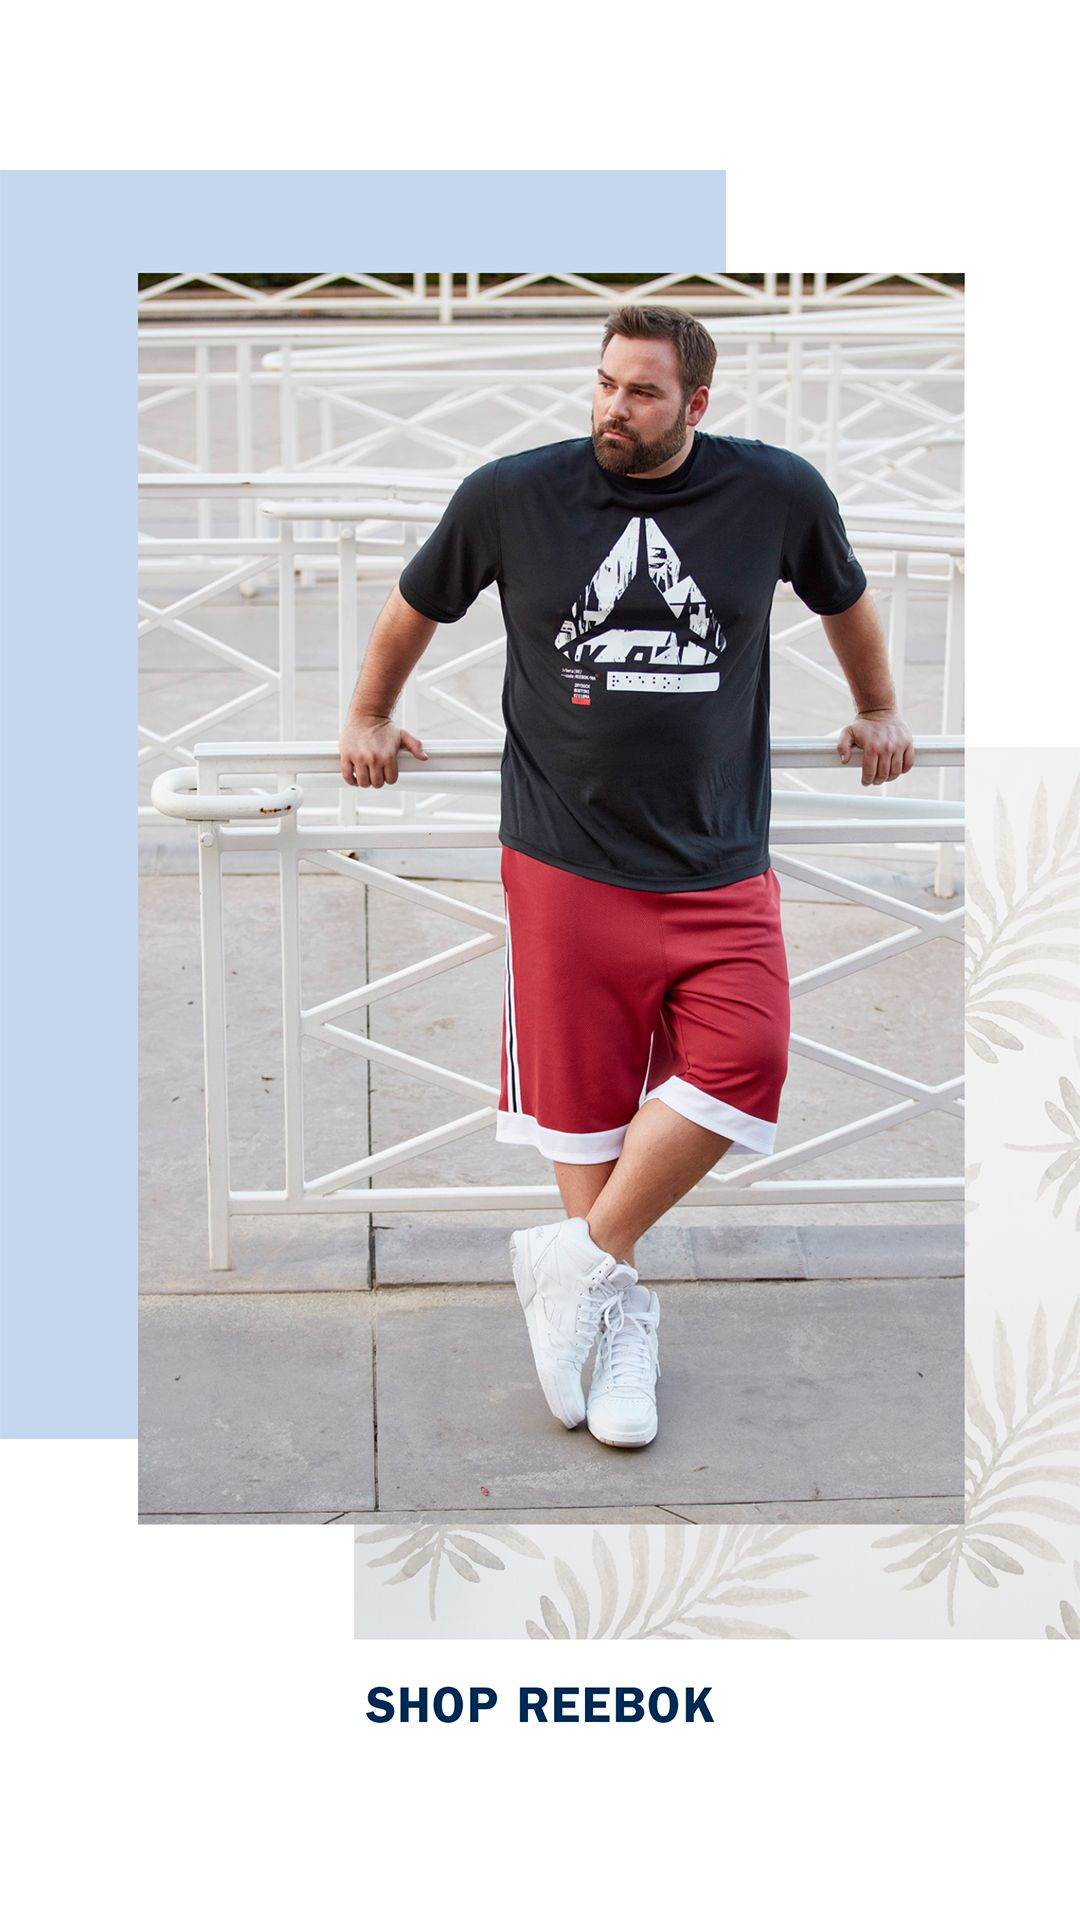 DXL Reebok Outfit for Big and Tall Guys